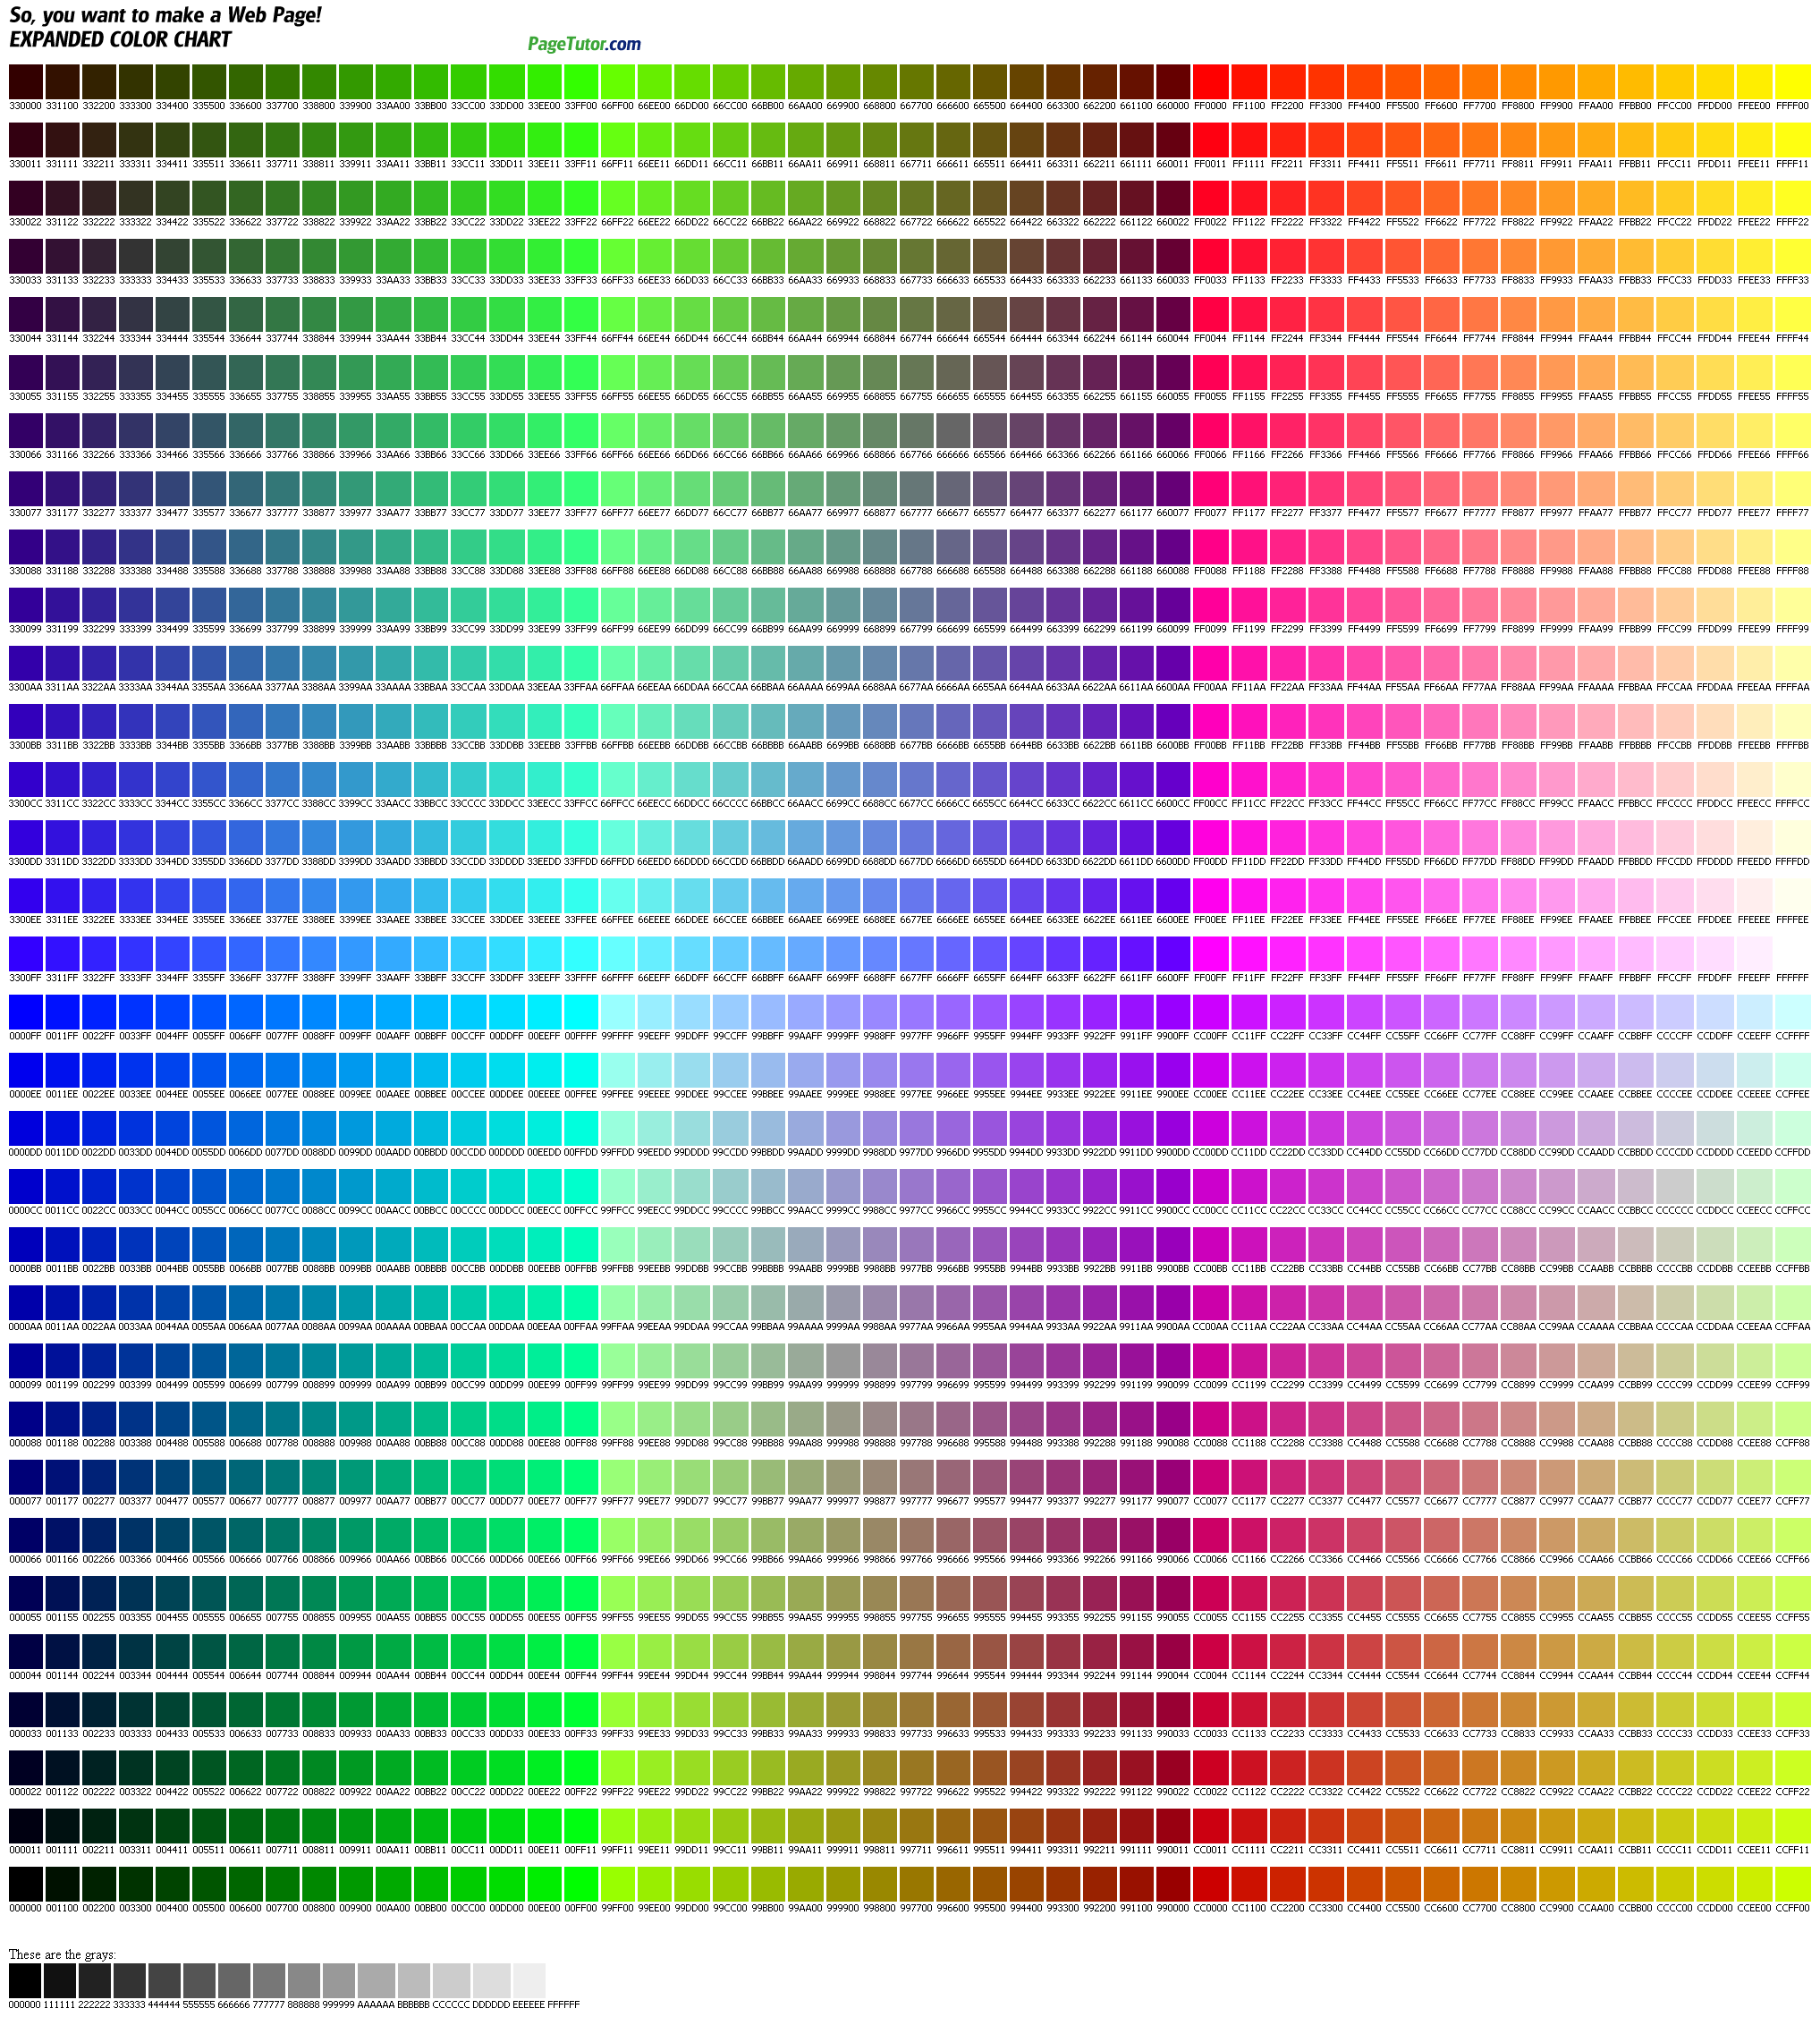 HTML Color Chart - Websafe Original 81 Colors - Vaughn's Summaries